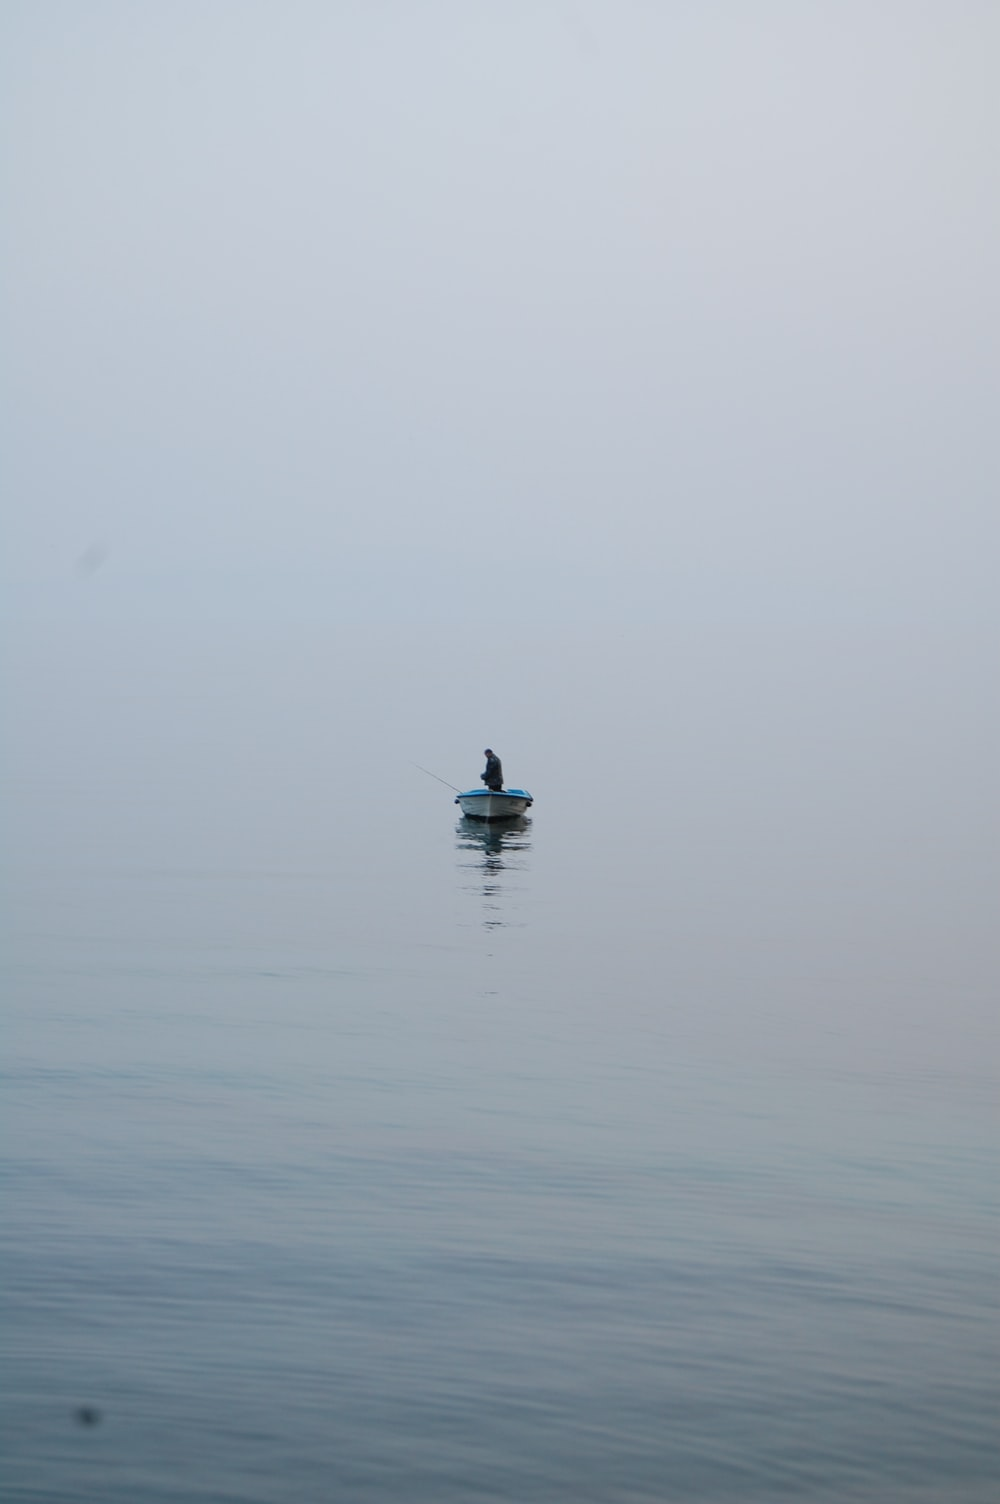 person in boat on body of water during daytime